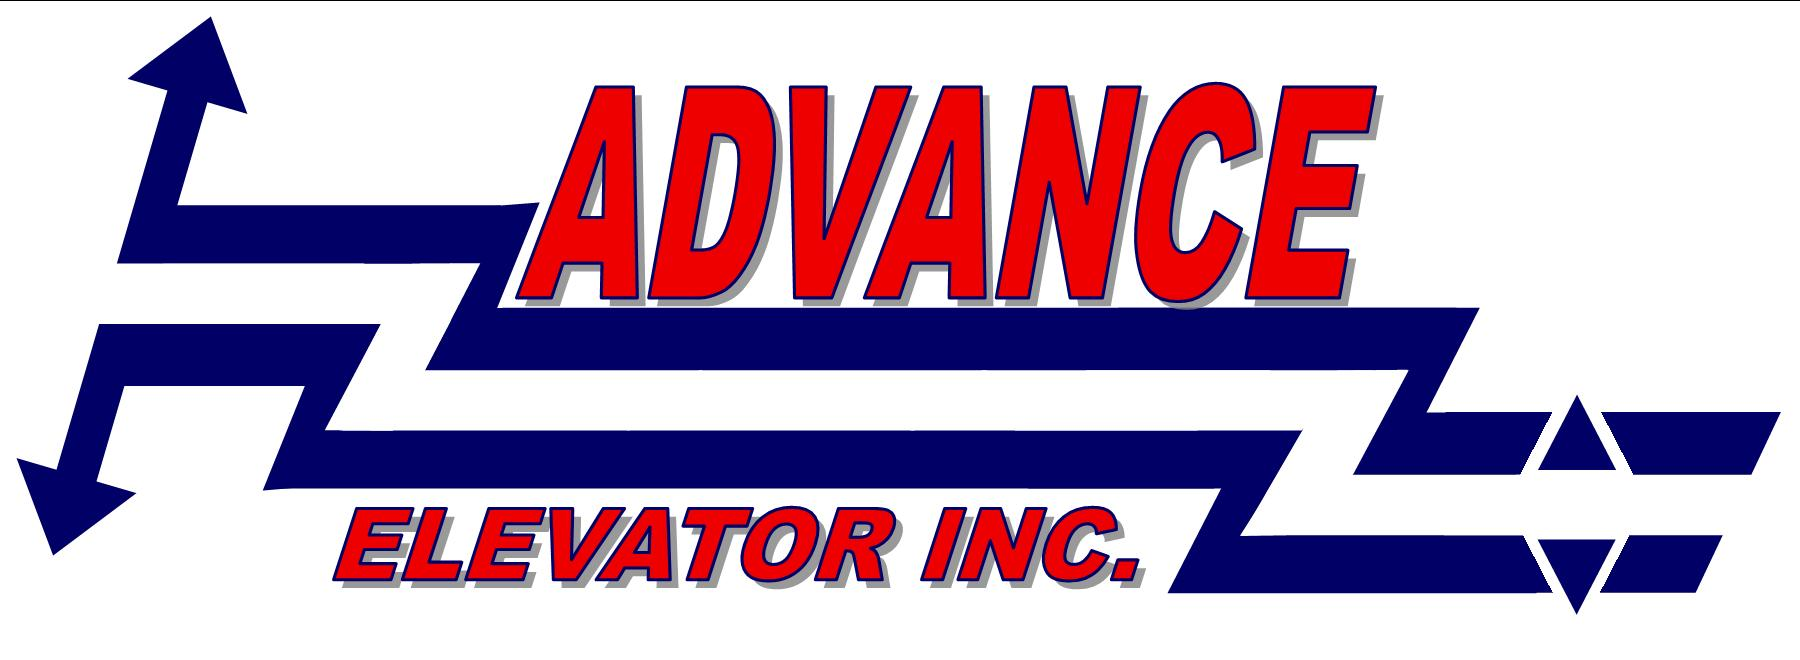 Advance Elevator Inc  | Careers